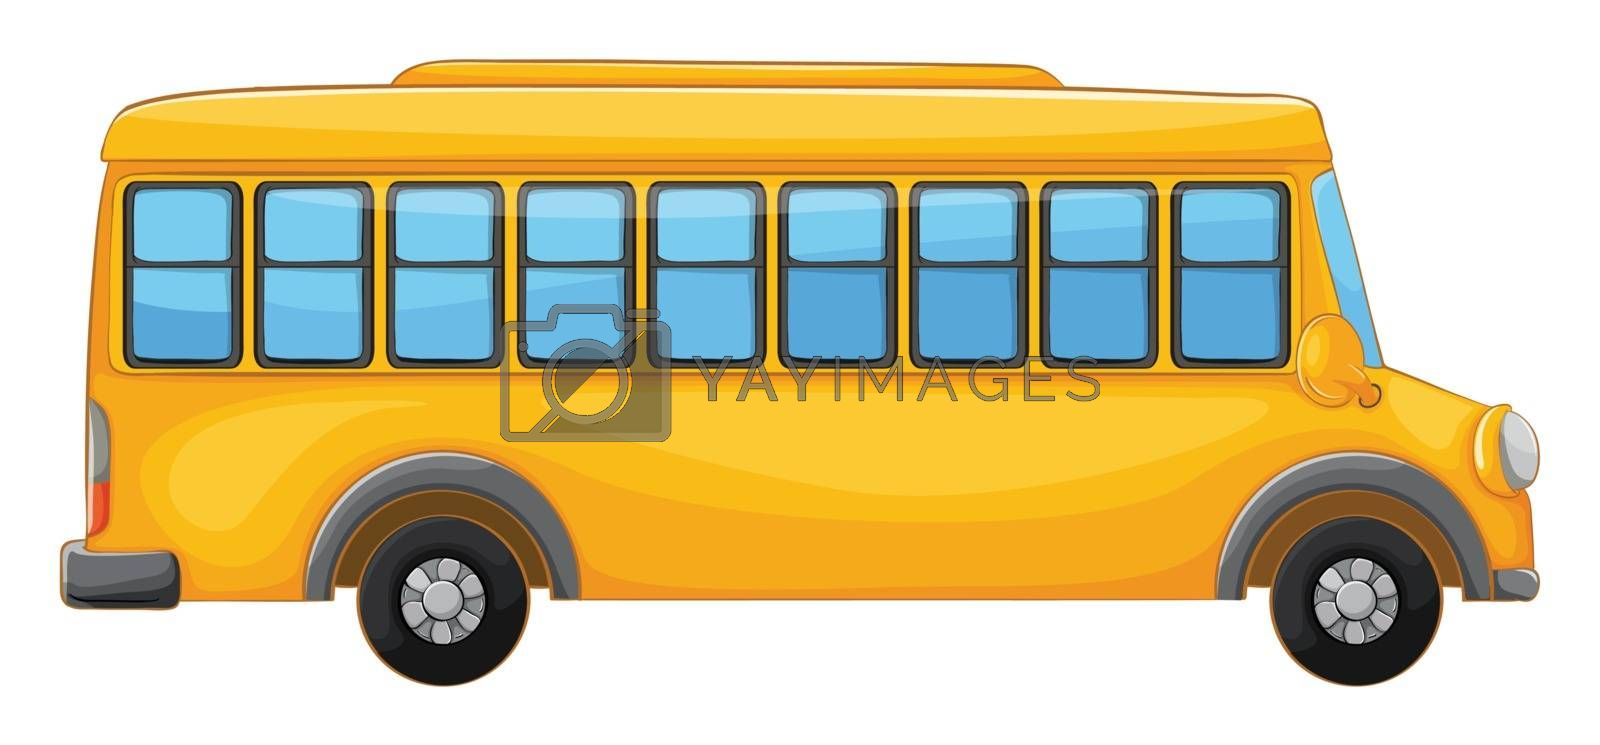 a bus by iimages